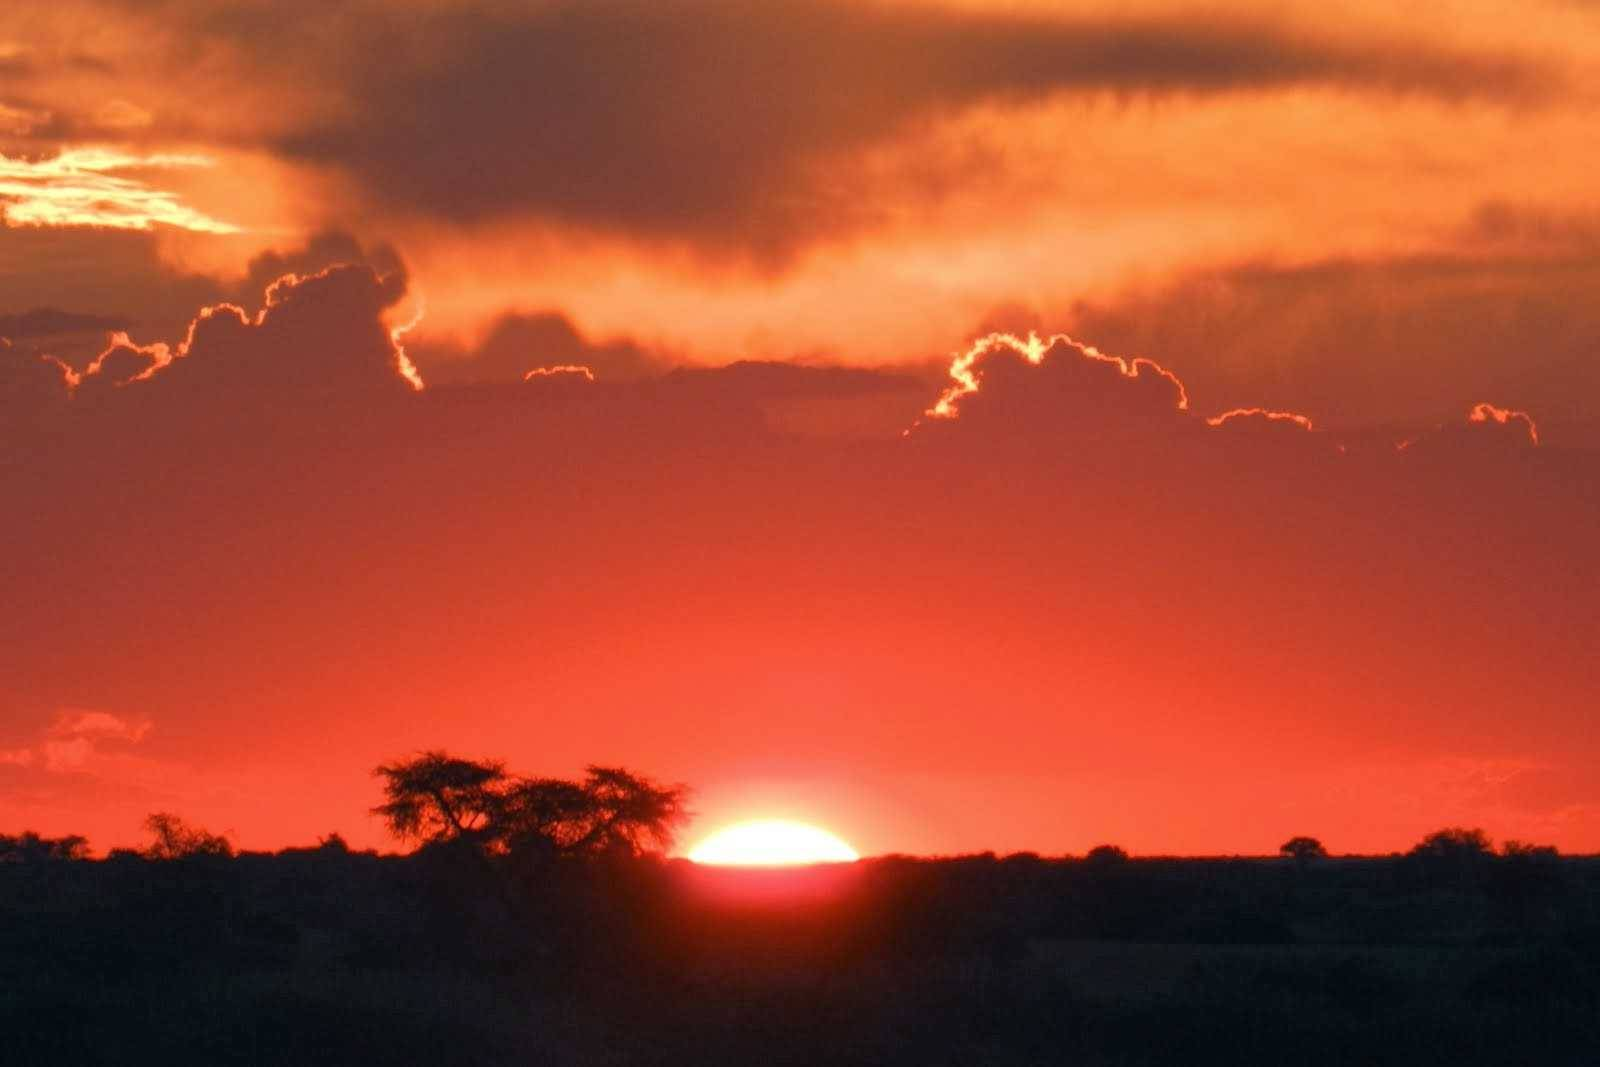 """""""At the top of one of the dunes we watched the sun set. The barman at the lodge had snacks and drinks waiting for everyone. It was a beautiful sight to see the sun set over the Kalahari Desert."""""""